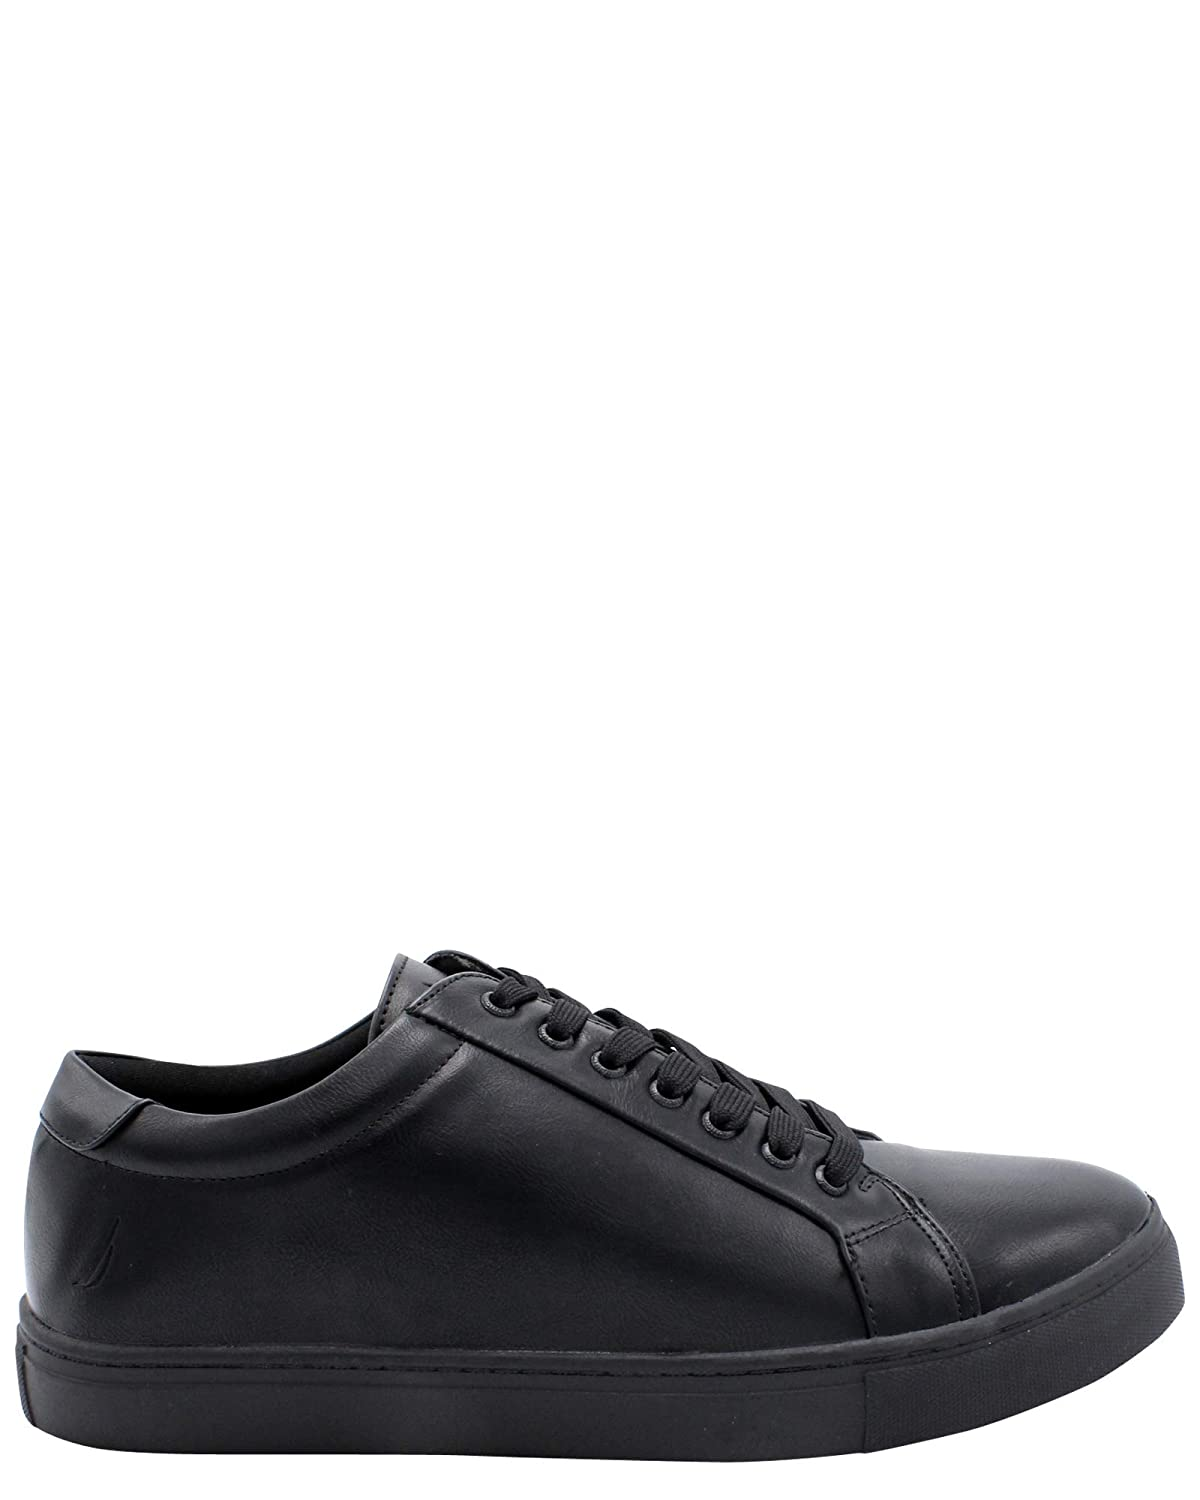 All-over Black Nautica Men's Casual Lace-Up Fashion Sneakers Oxford Comfortable Walking shoes